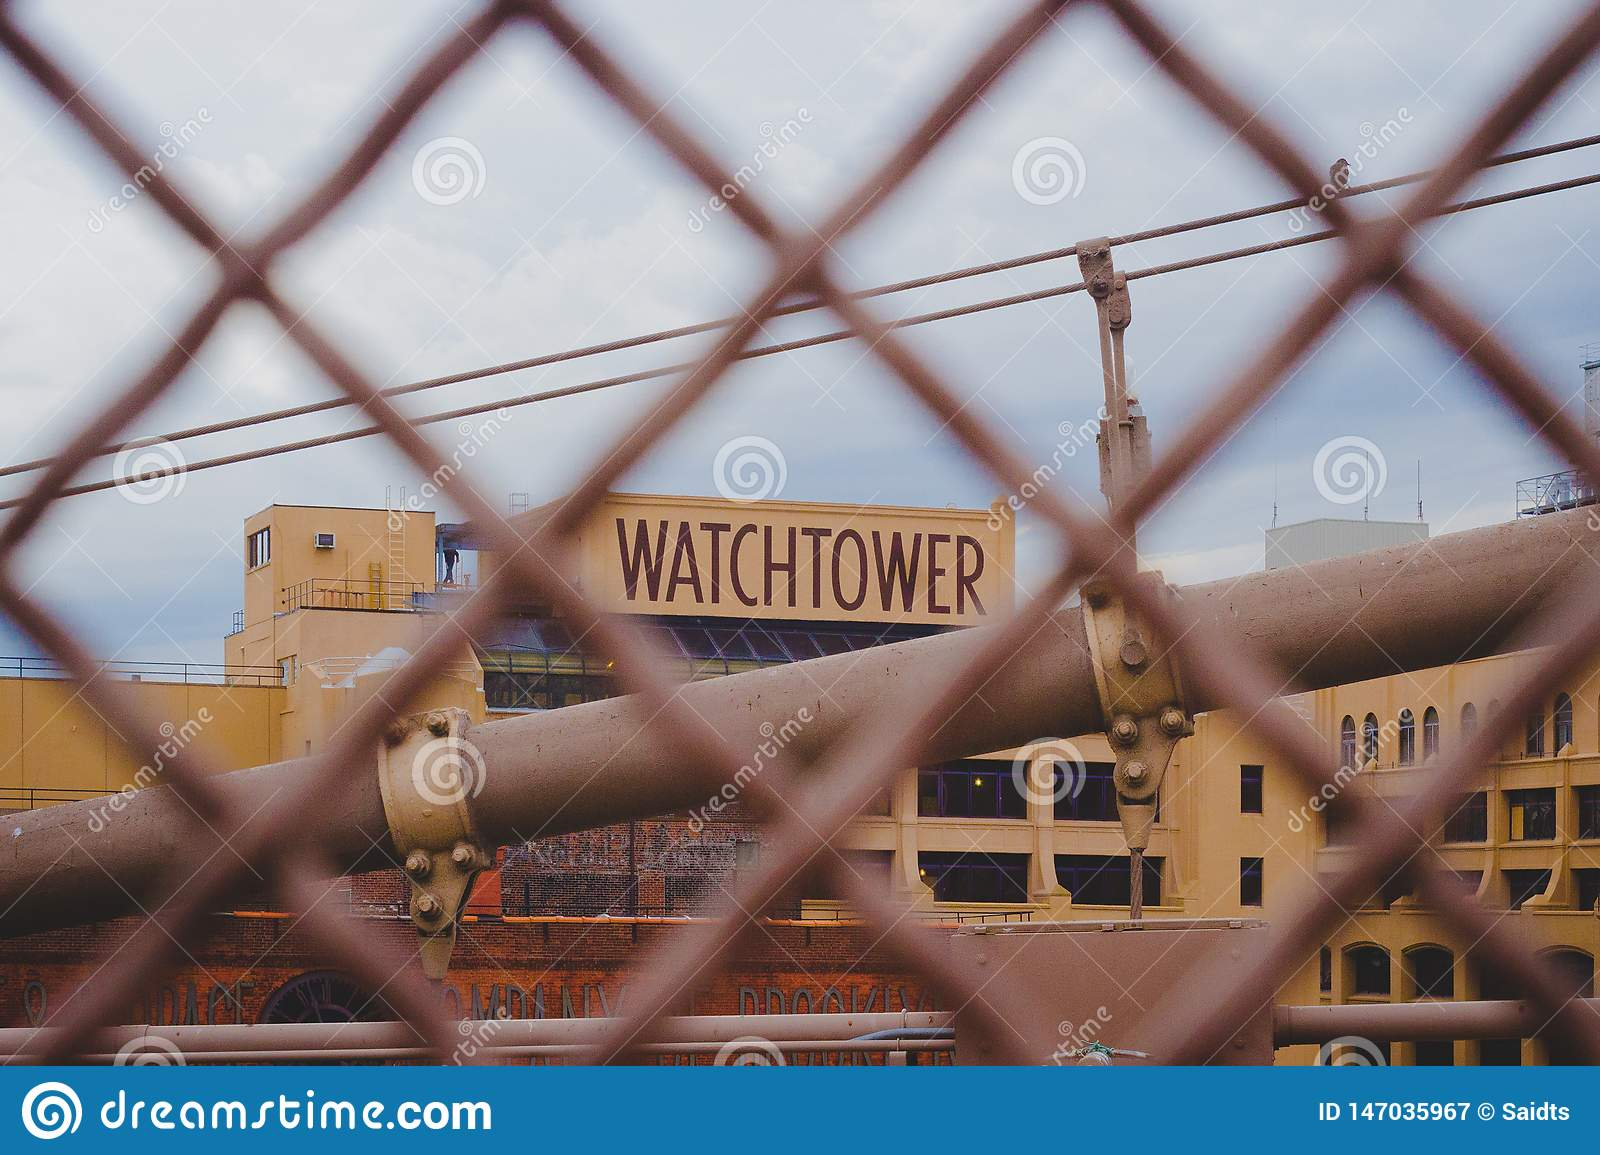 Watchtower - Jehovahs Witnesses former headquarter